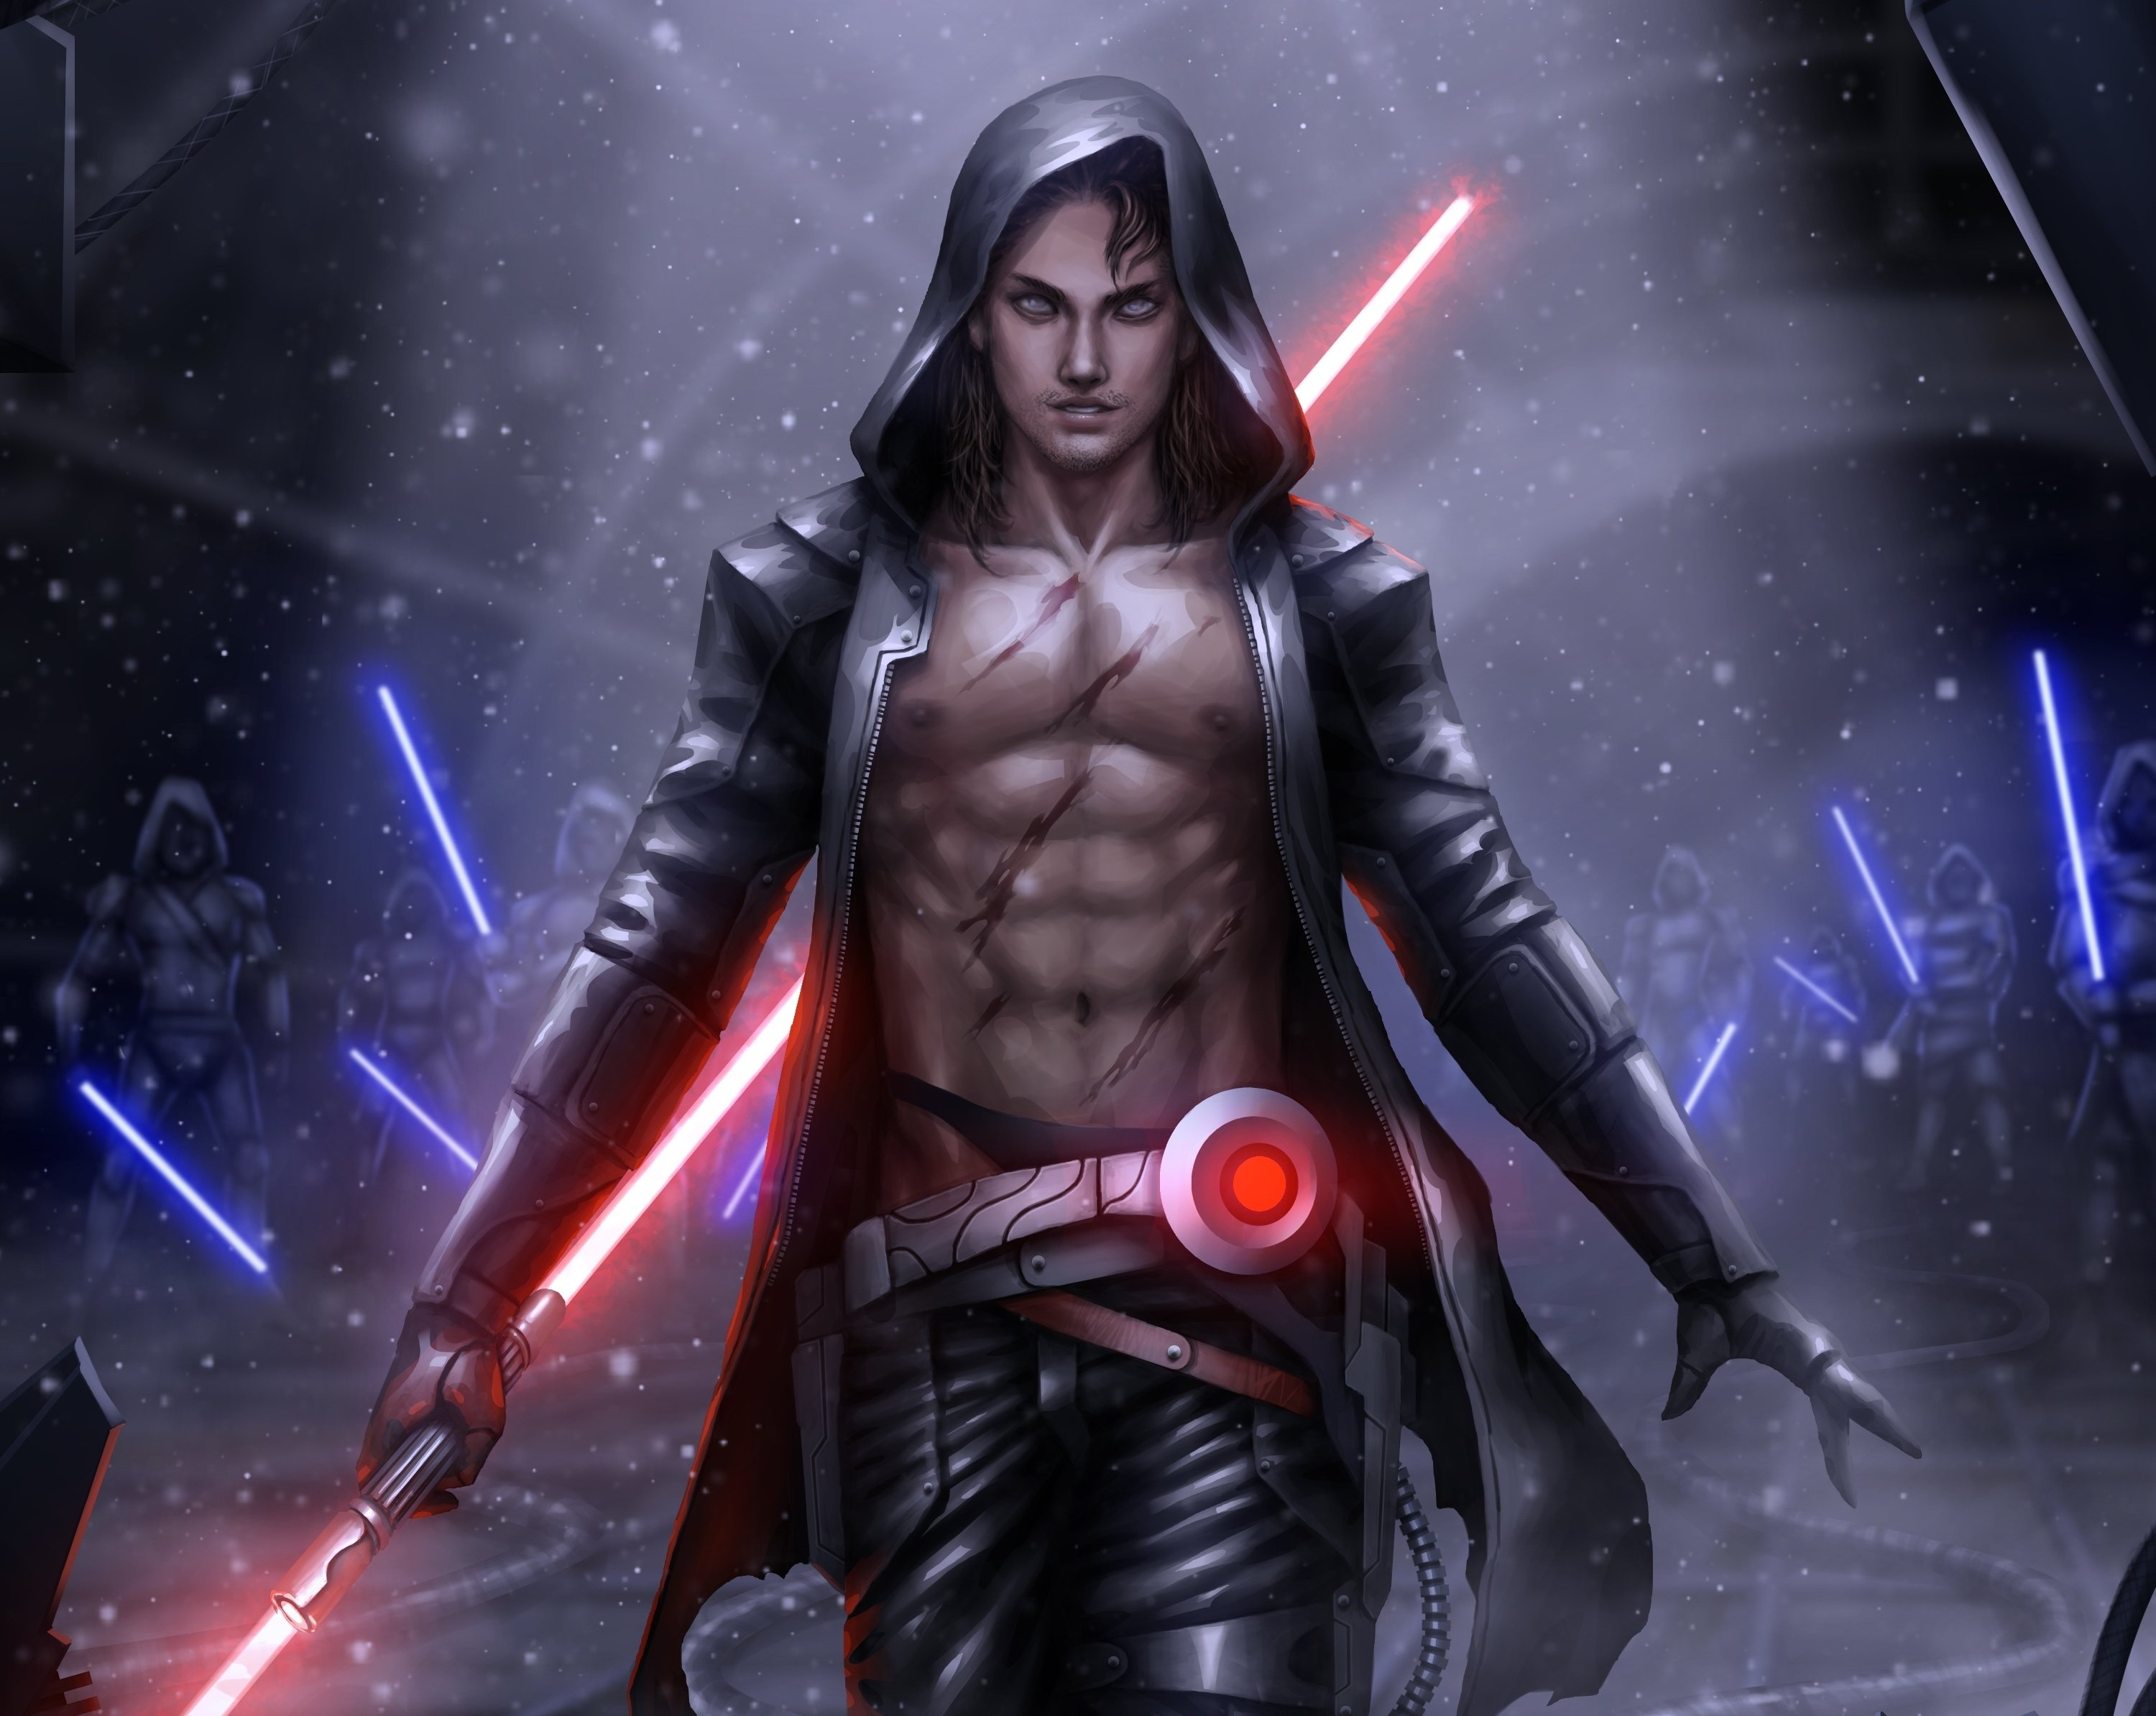 Free topless jedi wallpaper exploited images